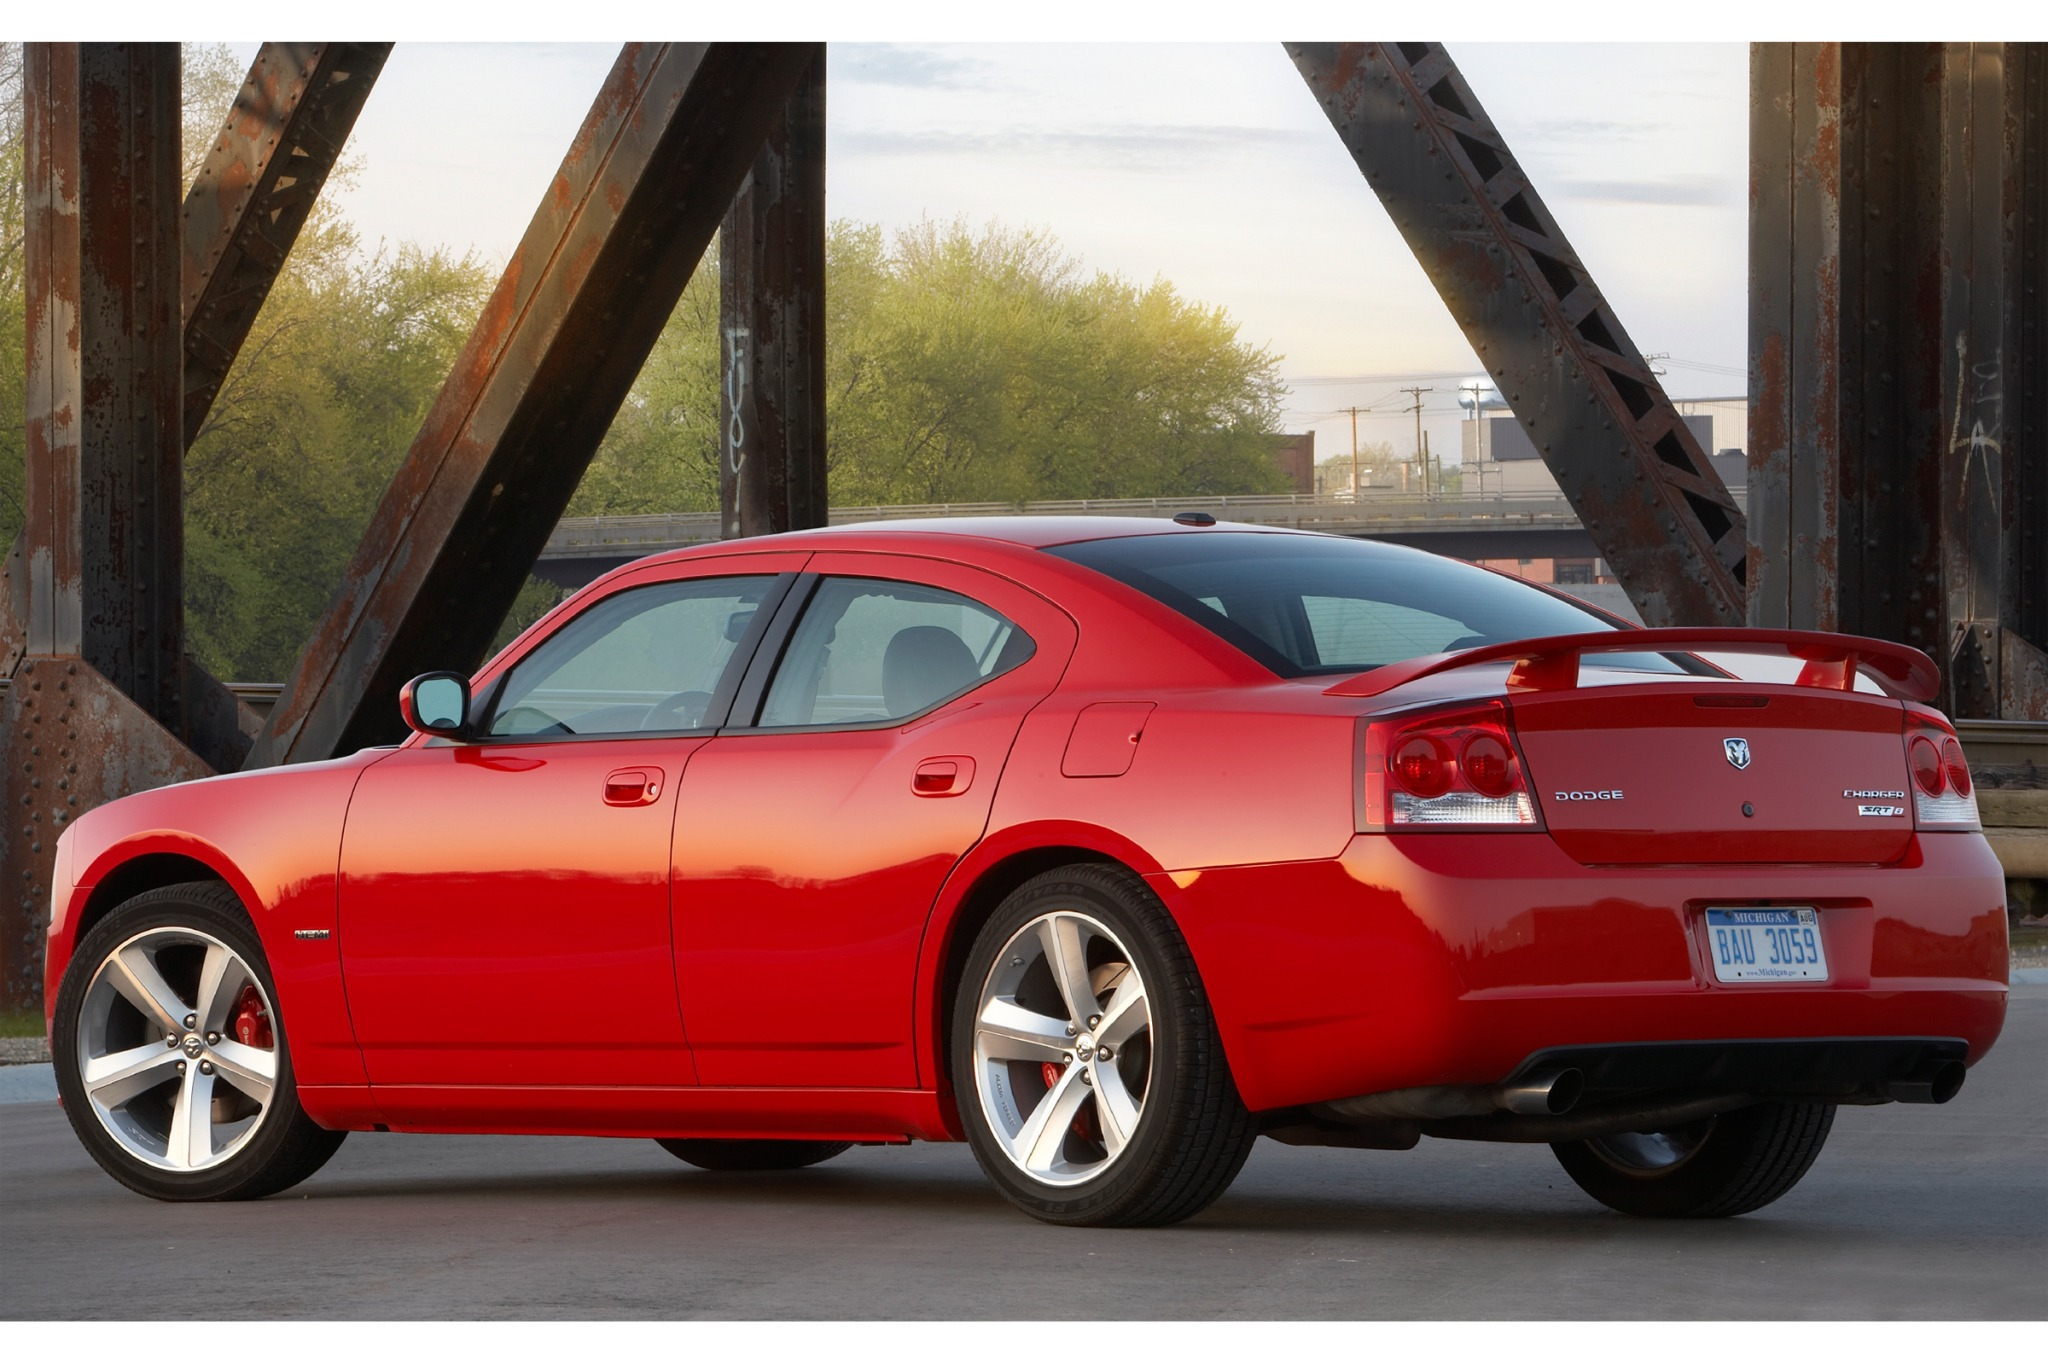 2010 Dodge Charger Image 4